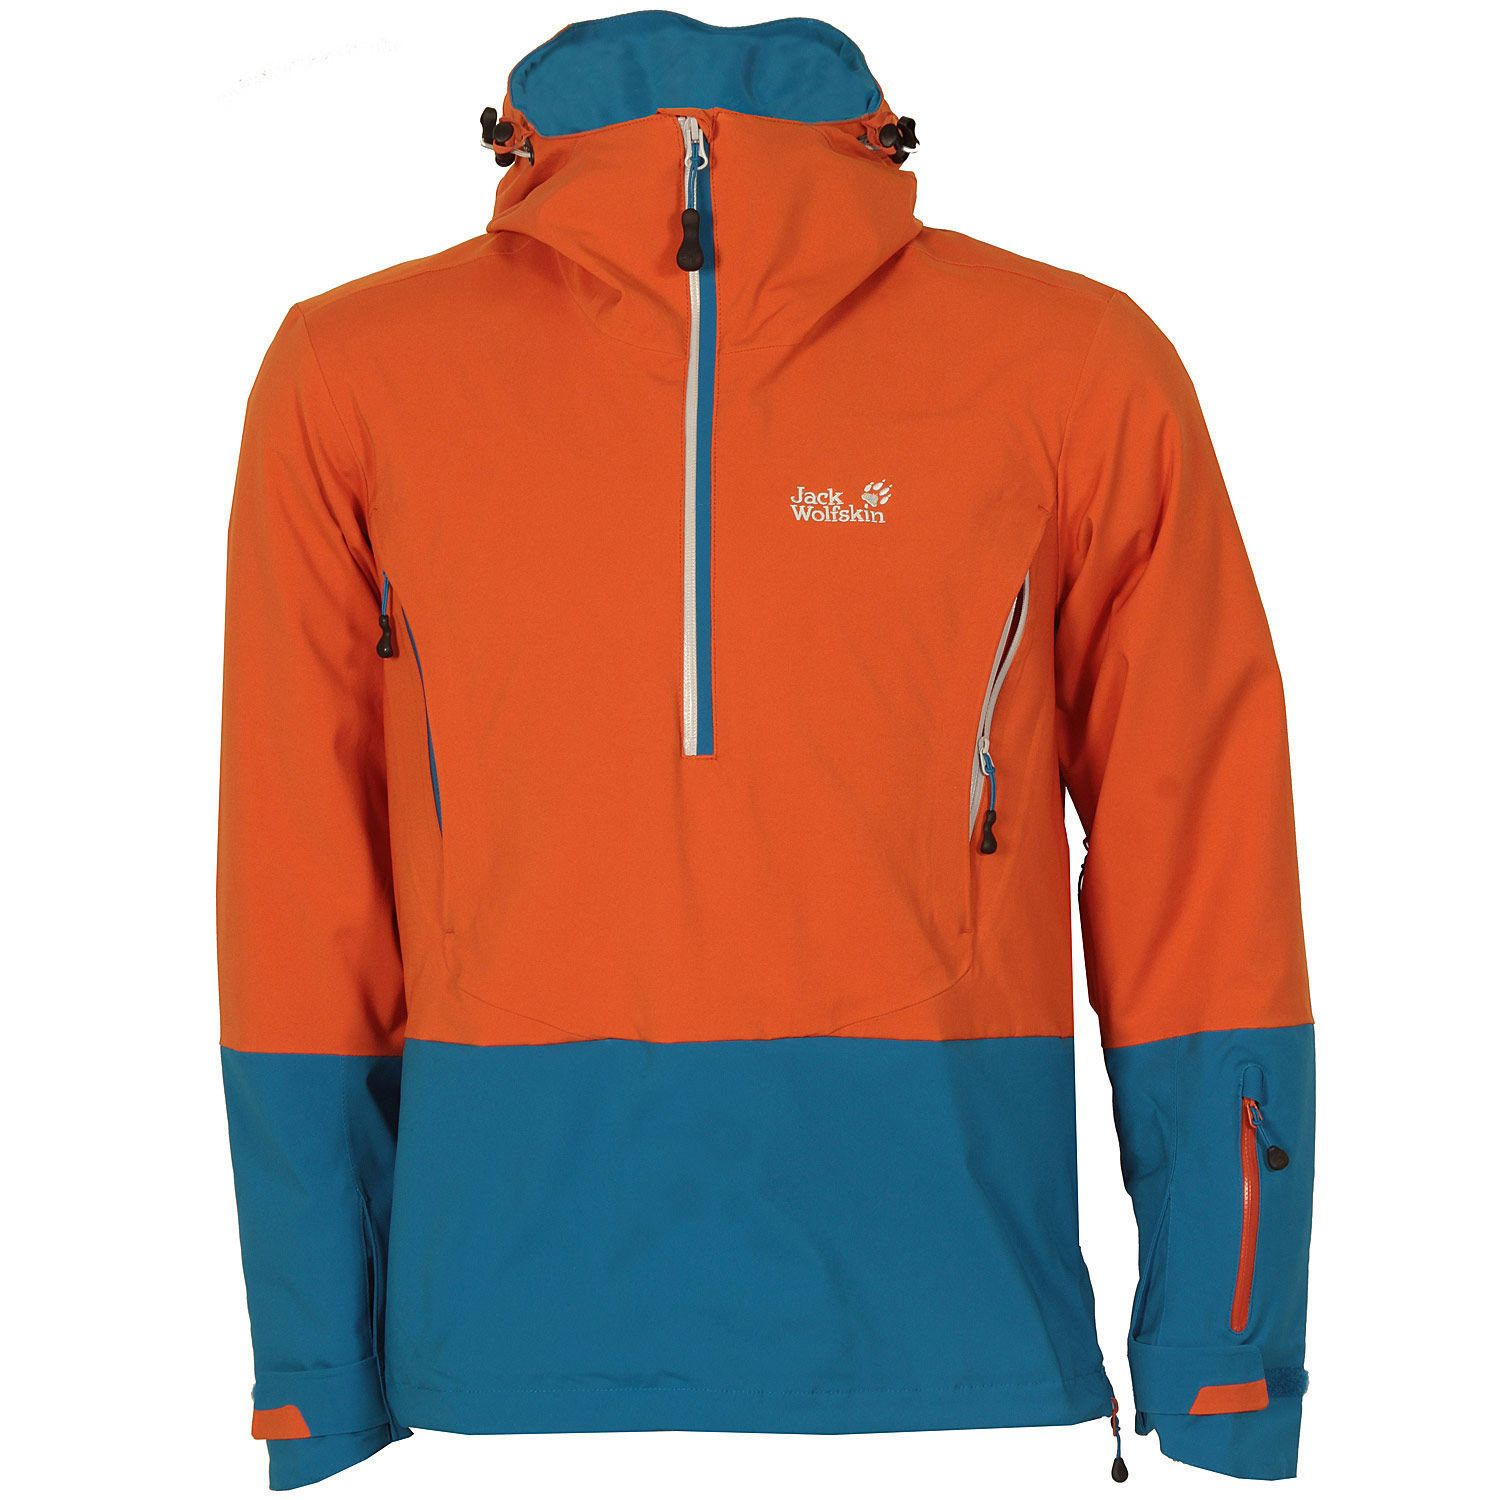 adb4f8cef0 Mens Jack Wolfskin Lone Mountain Jacket In Orange From Get The Label in  Clothes, Shoes & Accessories,Men's Clothing,Coats & Jackets   eBay